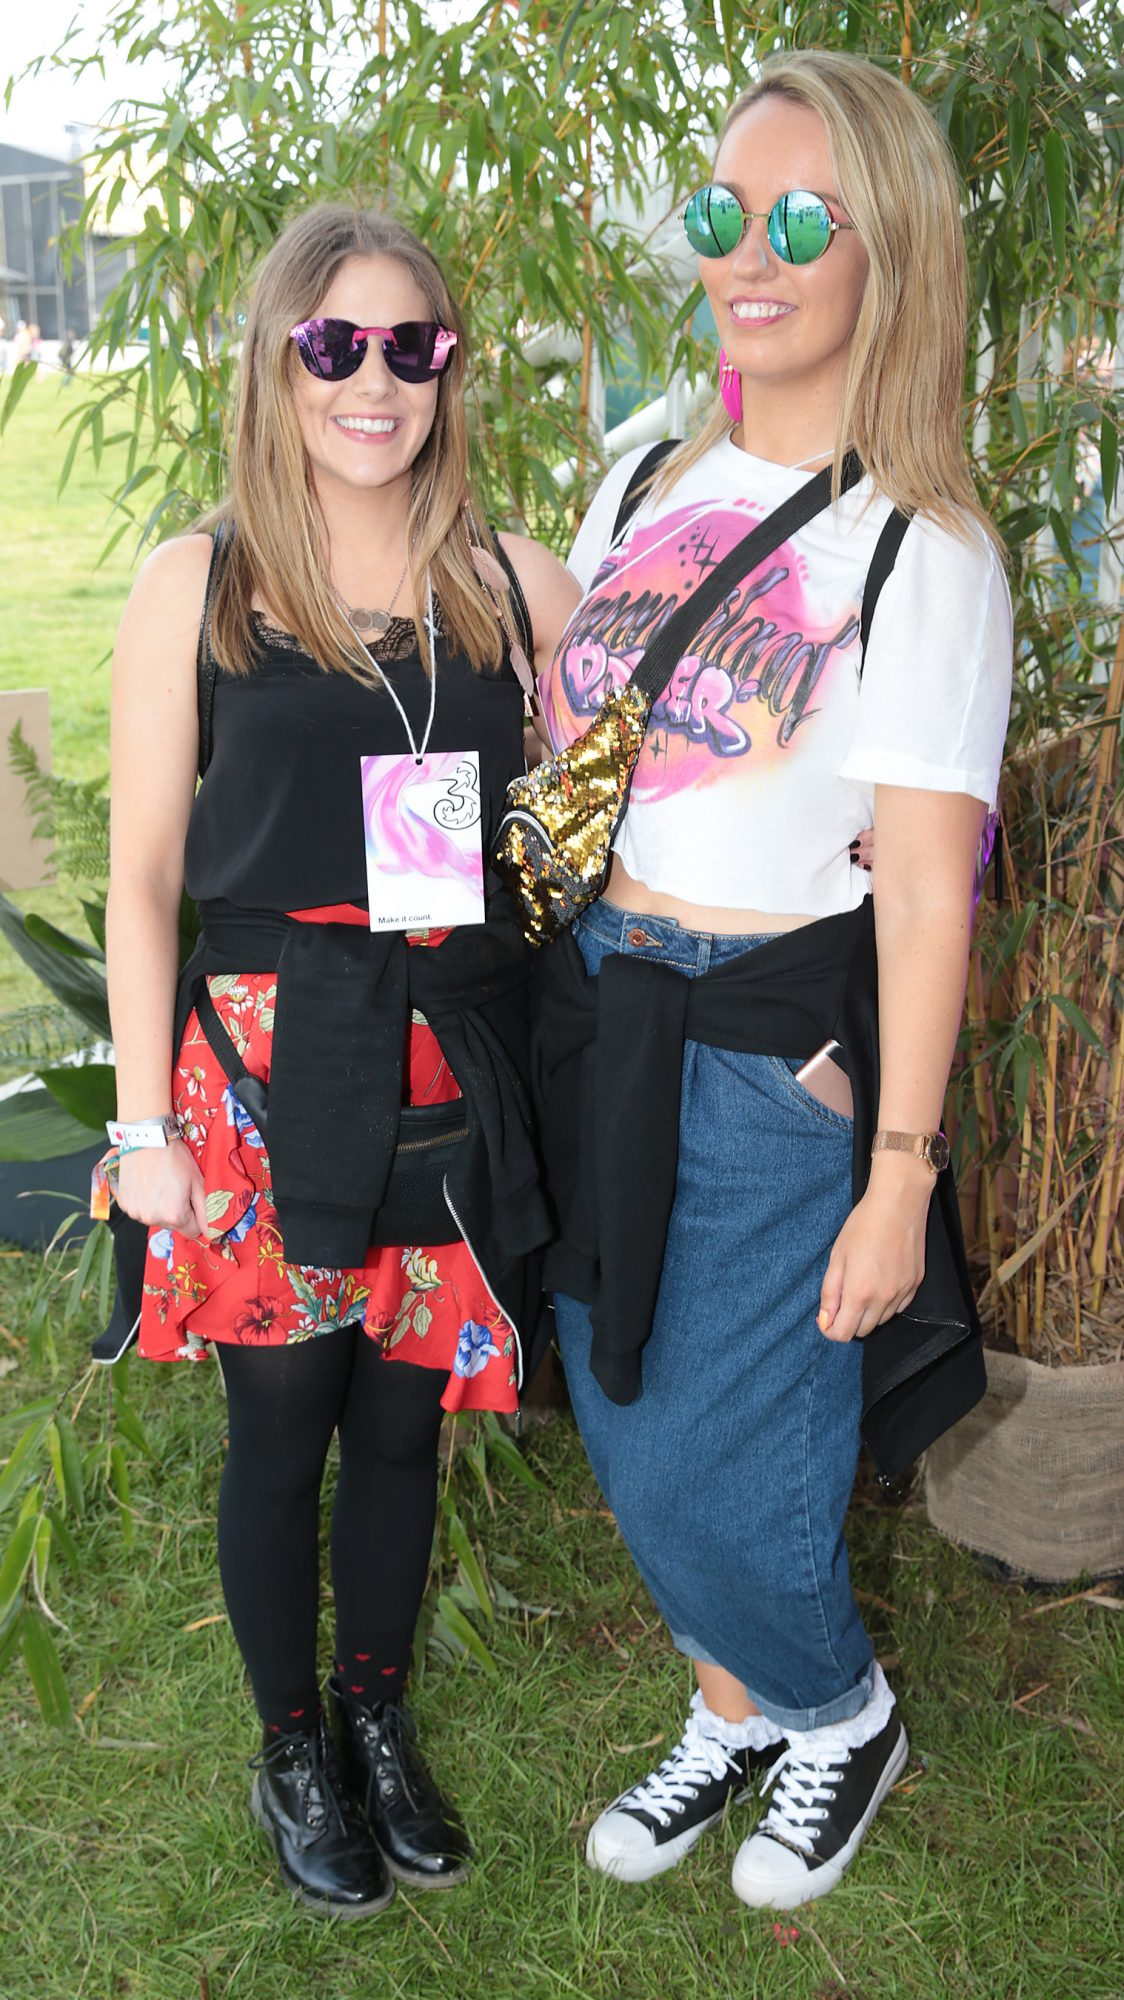 Kayleigh McDonald and Melissa Byrne at Three's Charge & Chill at Electric Picnic at Stradbally, Co. Laois. 